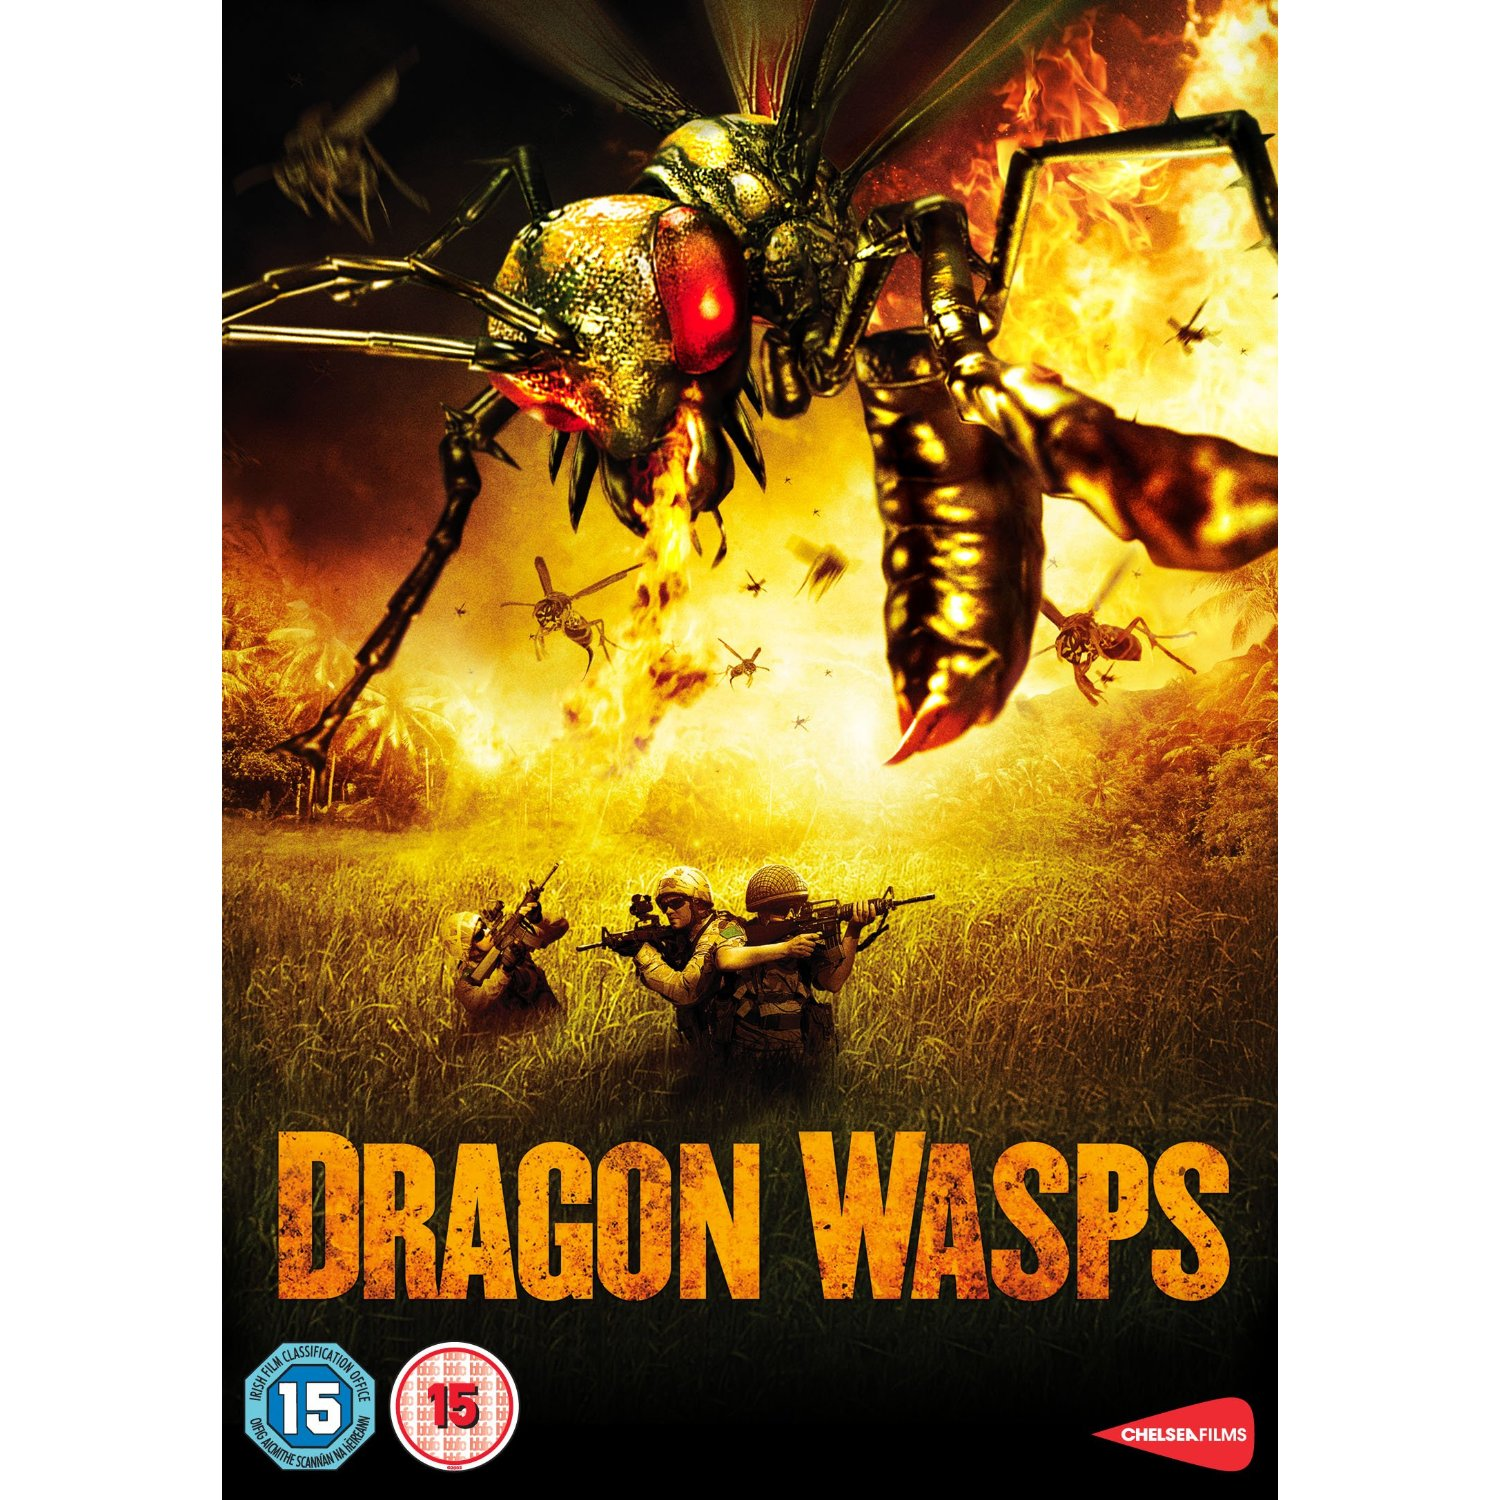 dragon wasps chelsea films british uk dvd1 Bug Movies From The Twenty First Century